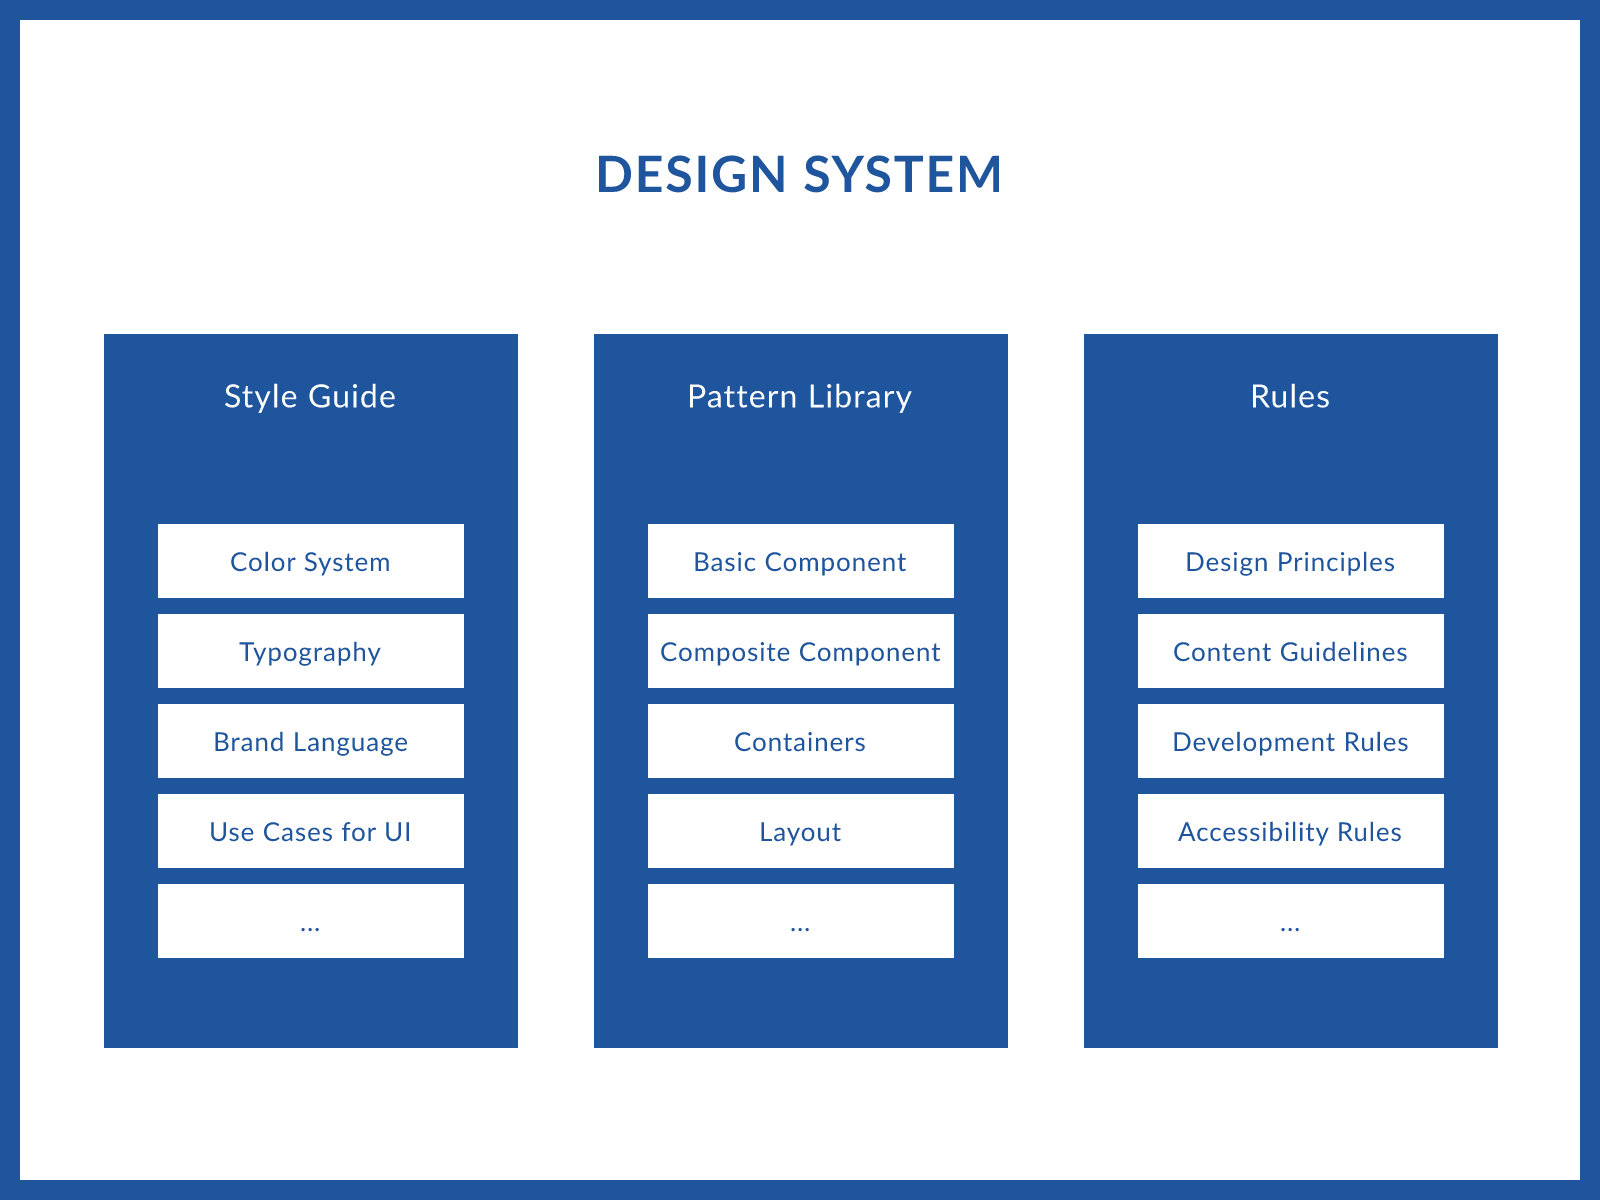 A diagram of design system elements.